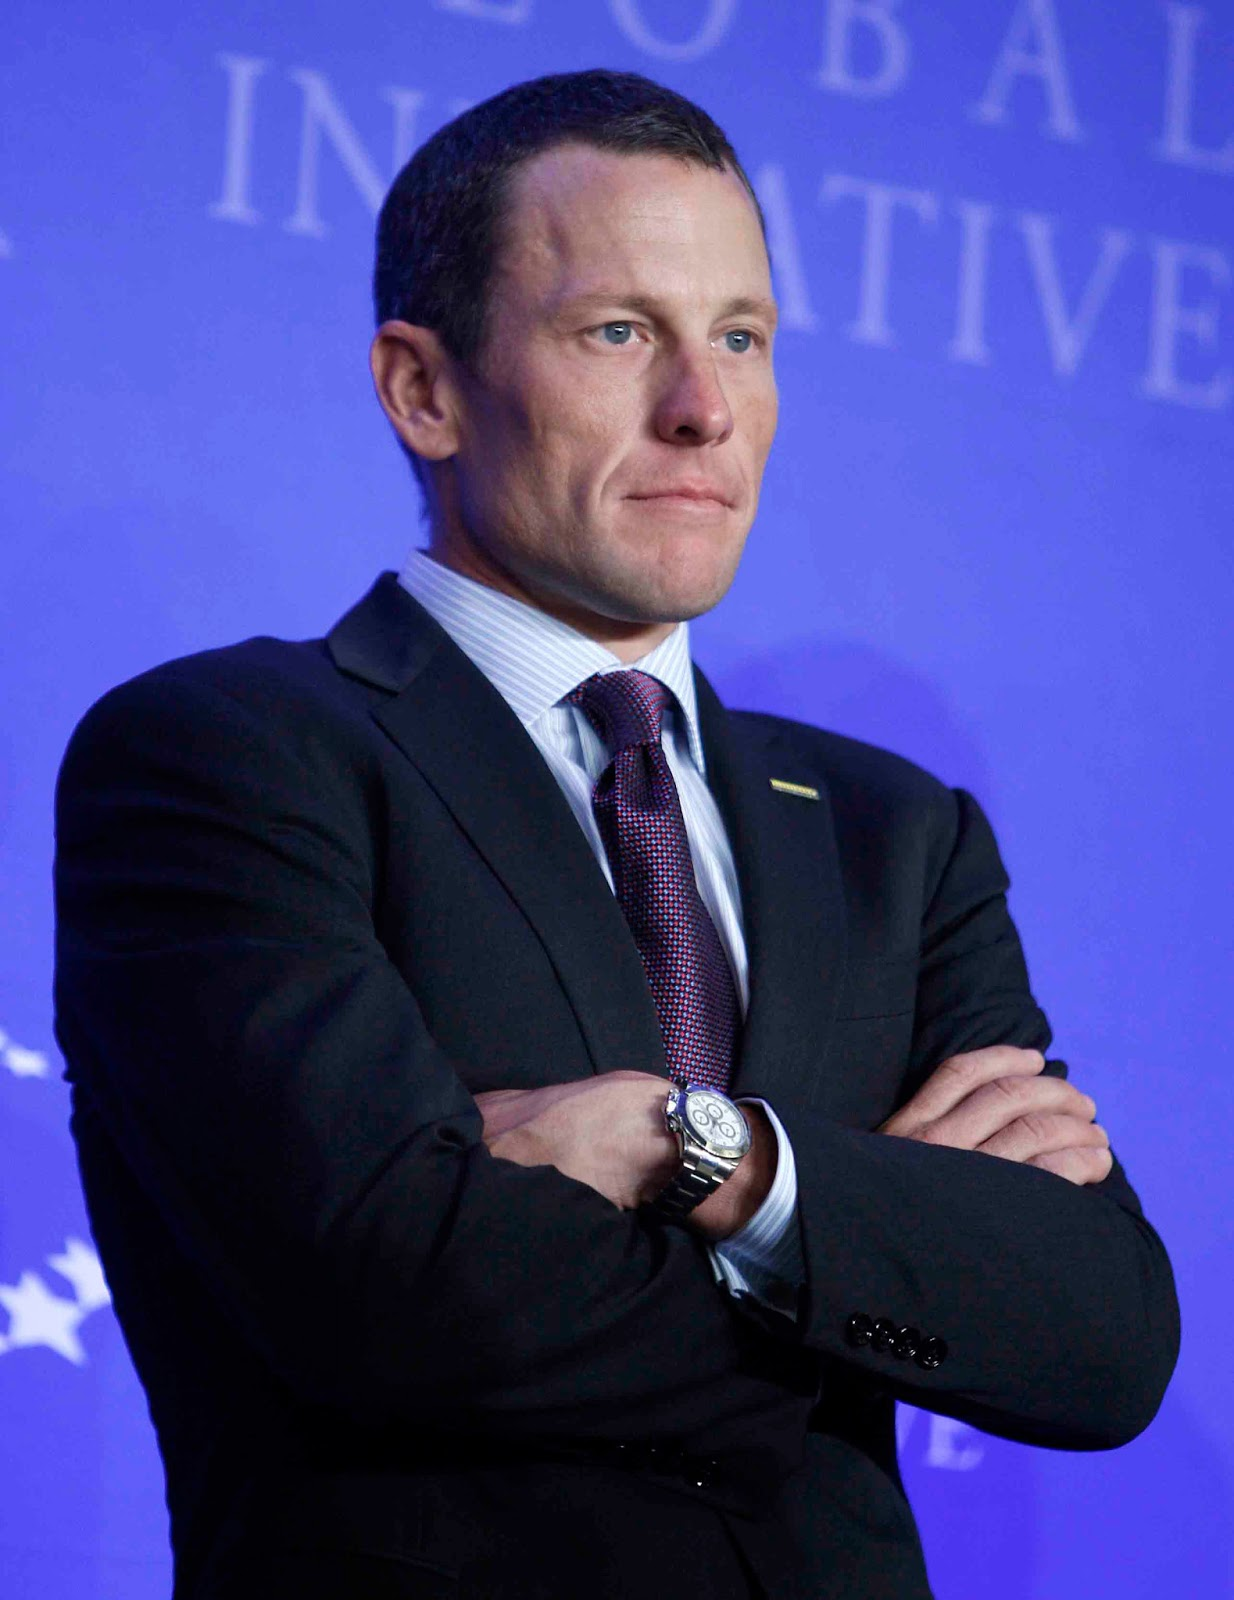 Lance Armstrong Latest Hd Wallpapers 2013 It 39 S All About